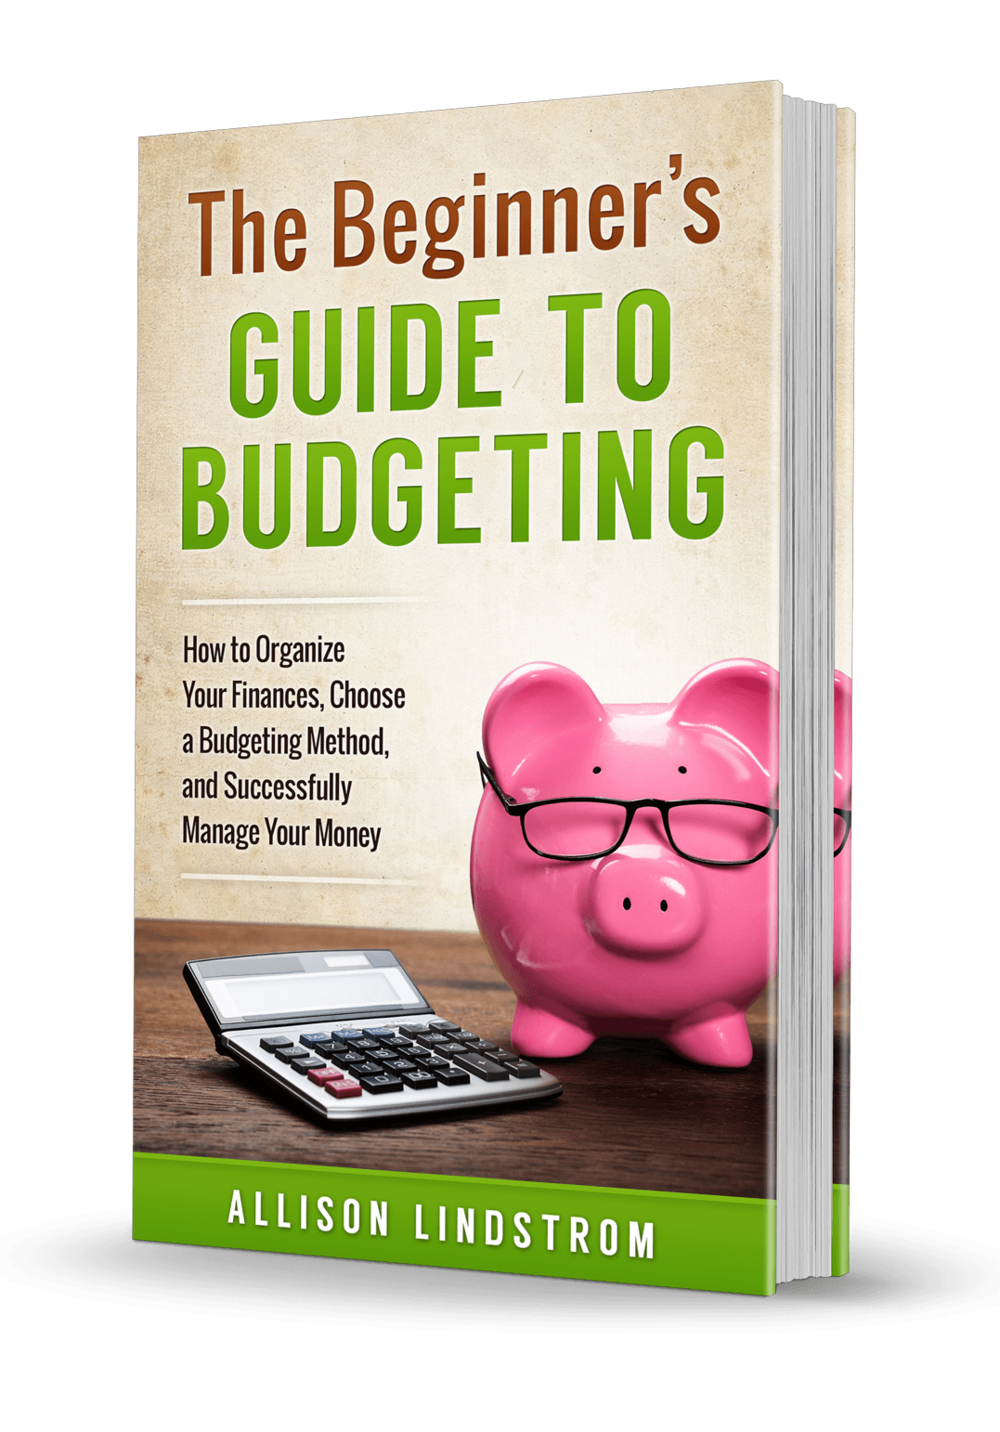 """The Beginner's Guide to Budgeting: How to Organize Your Finances, Choose a Budgeting Method, and Successfully Manage Your Money"" is available on Amazon!"